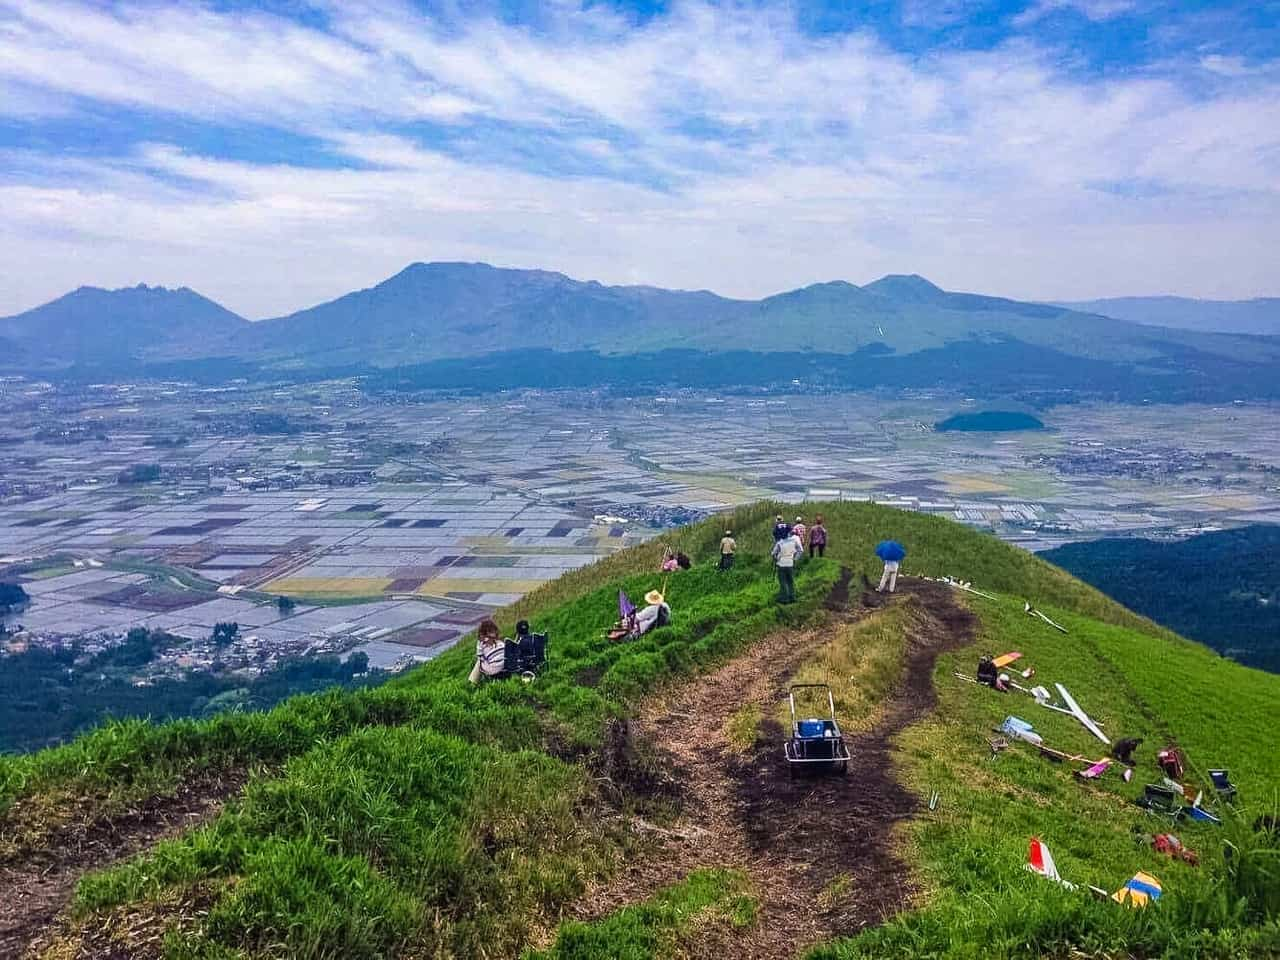 Sightseeing in the Recovering Aso Mountain Range